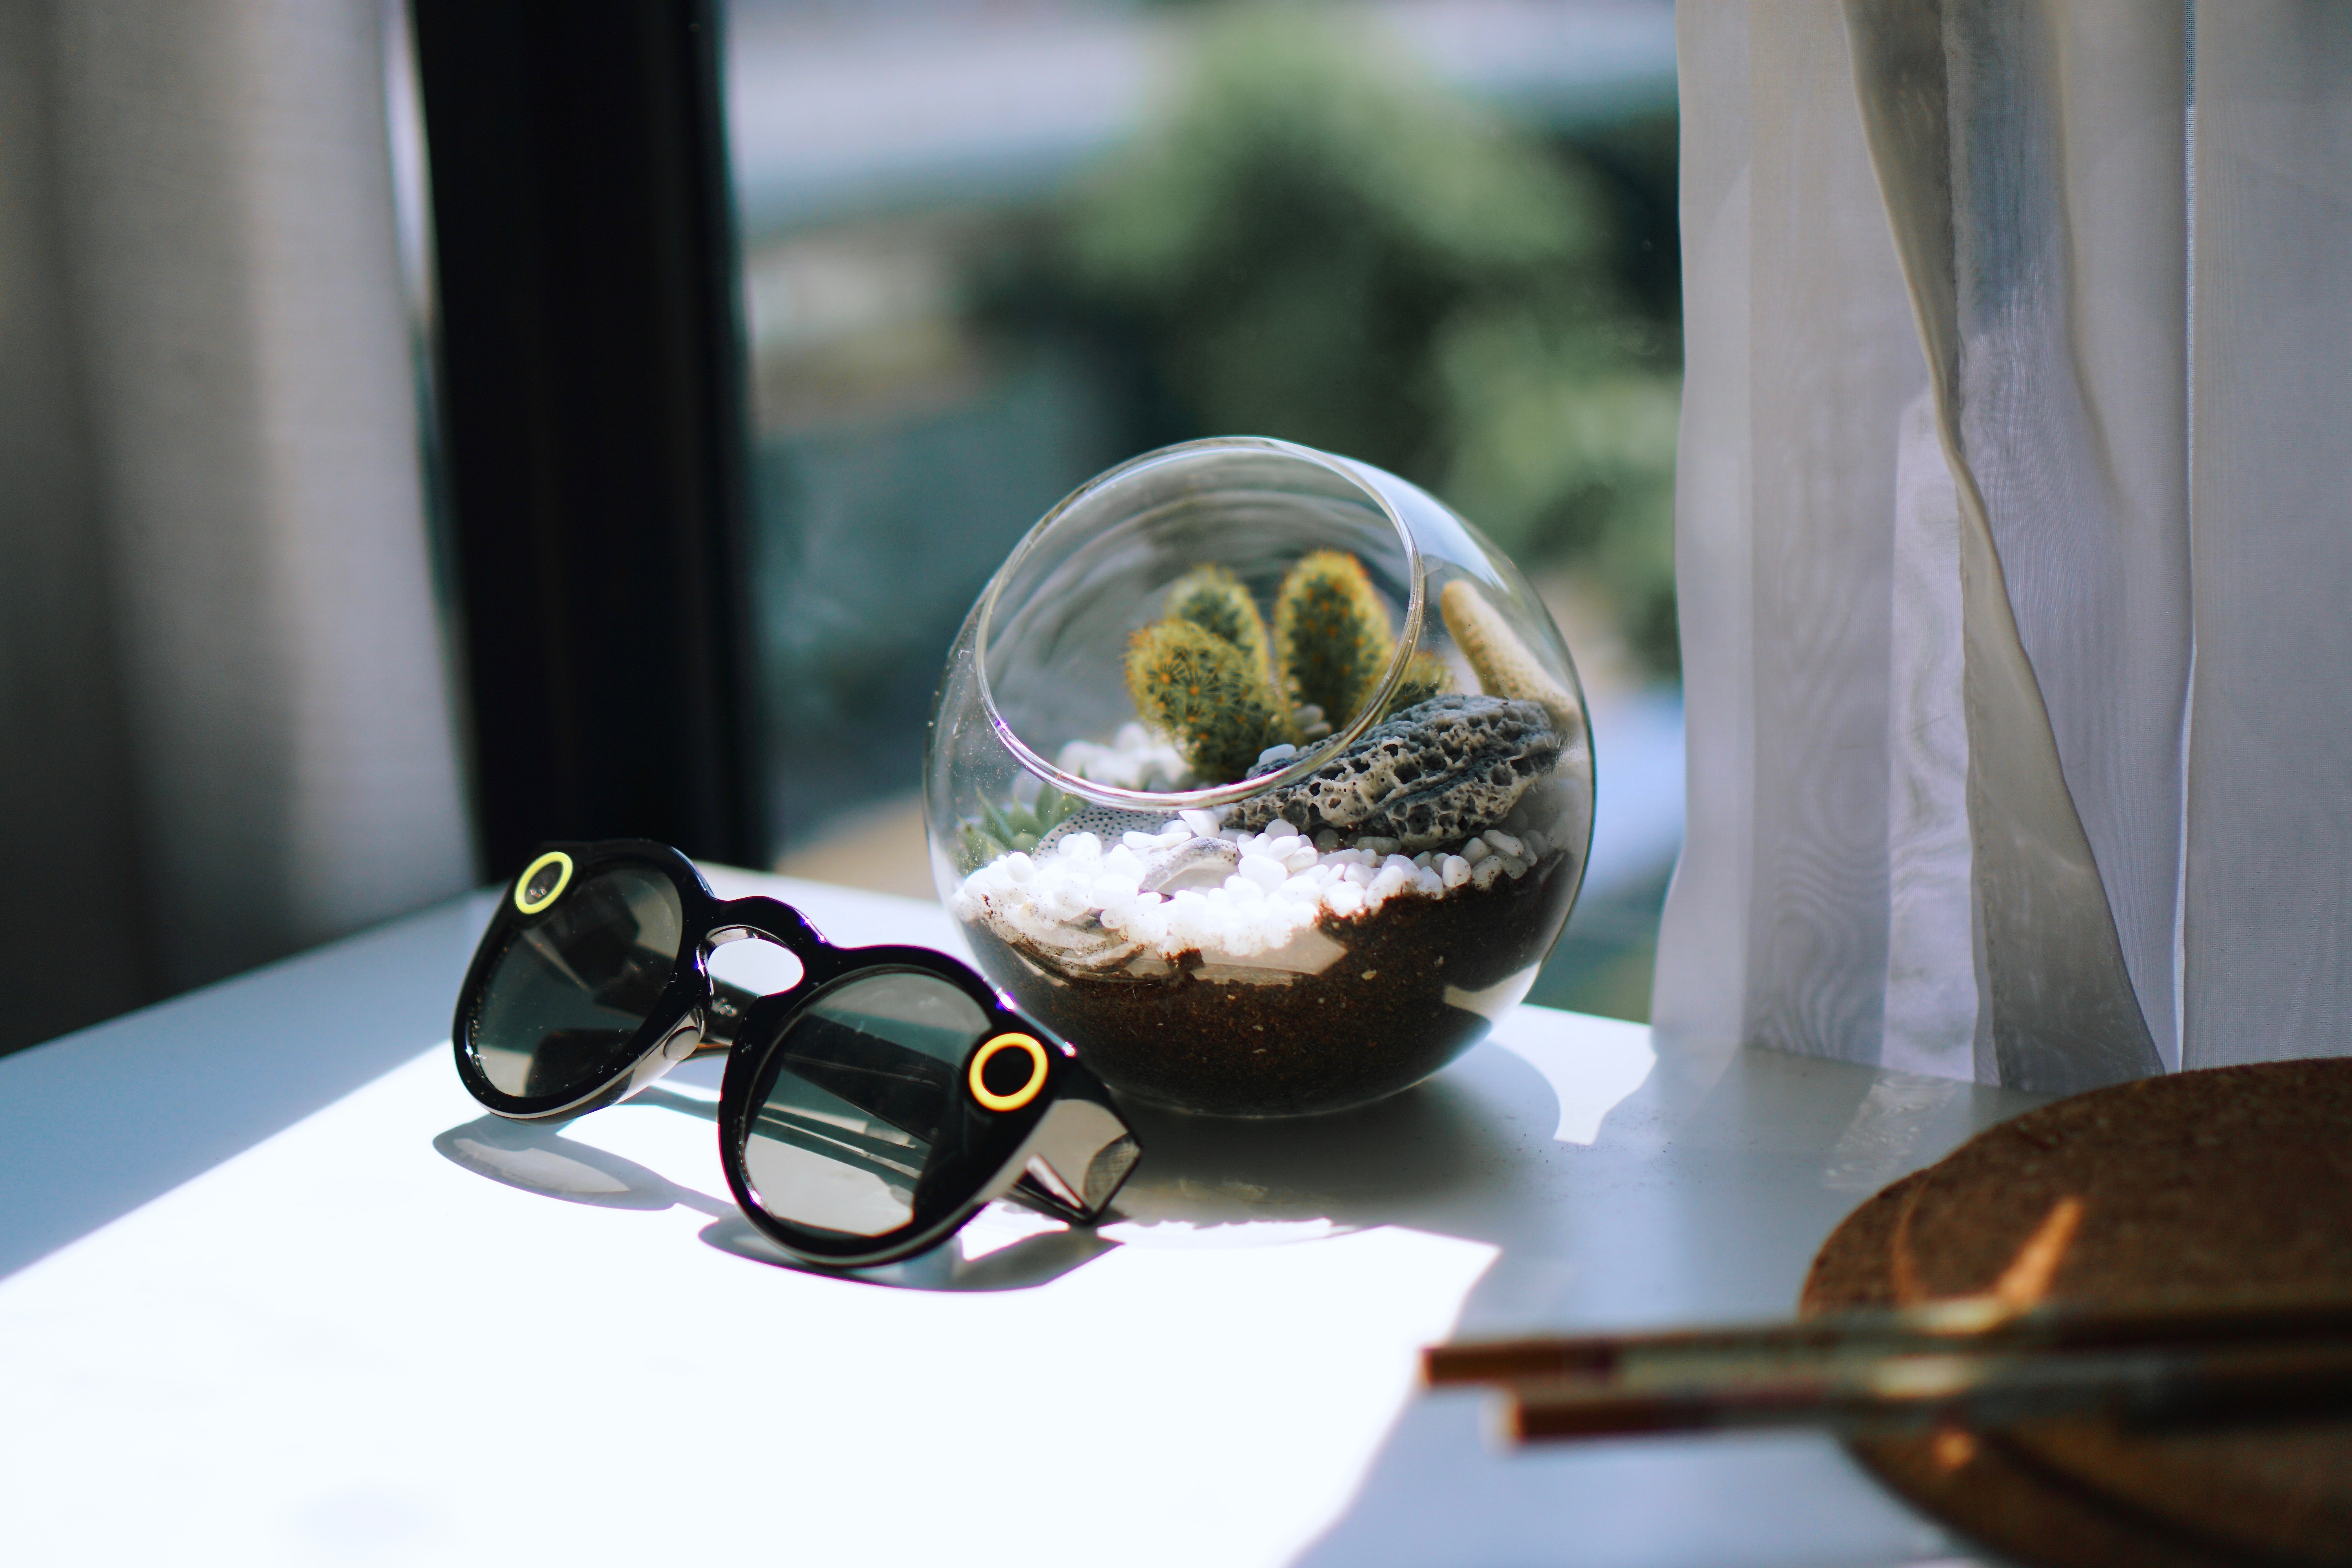 black framed sunglasses near glass bowl with plant on table